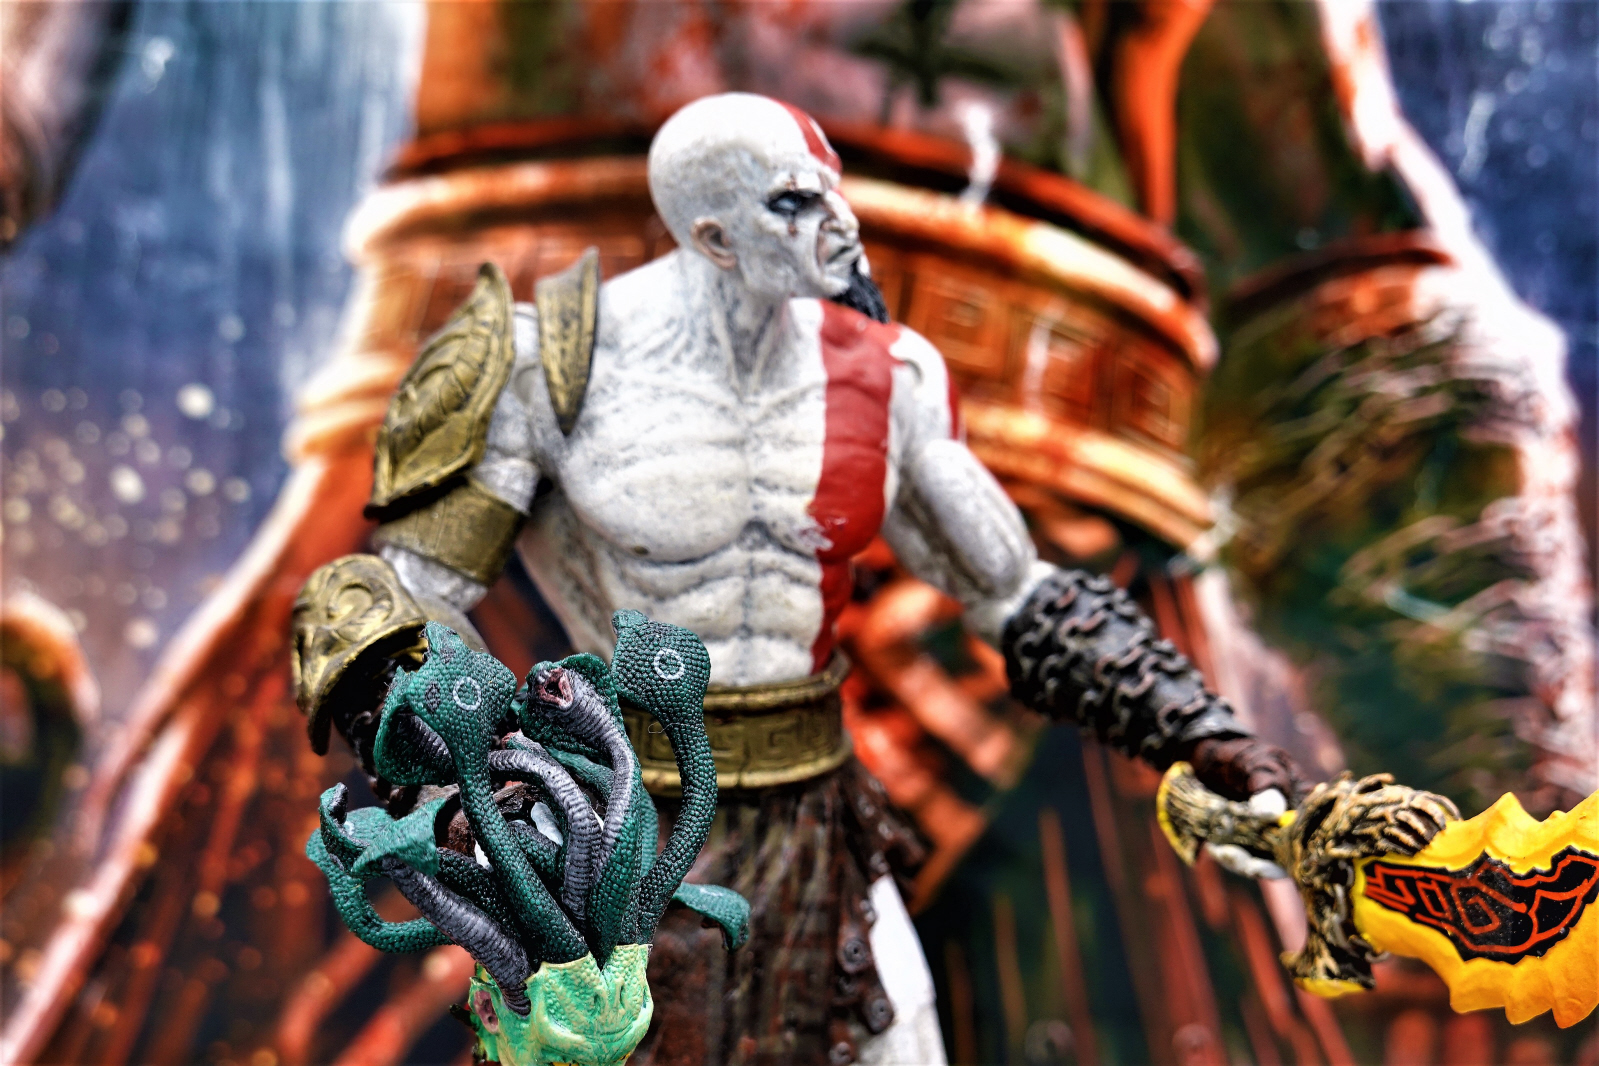 Our God of War Statue / Diorama